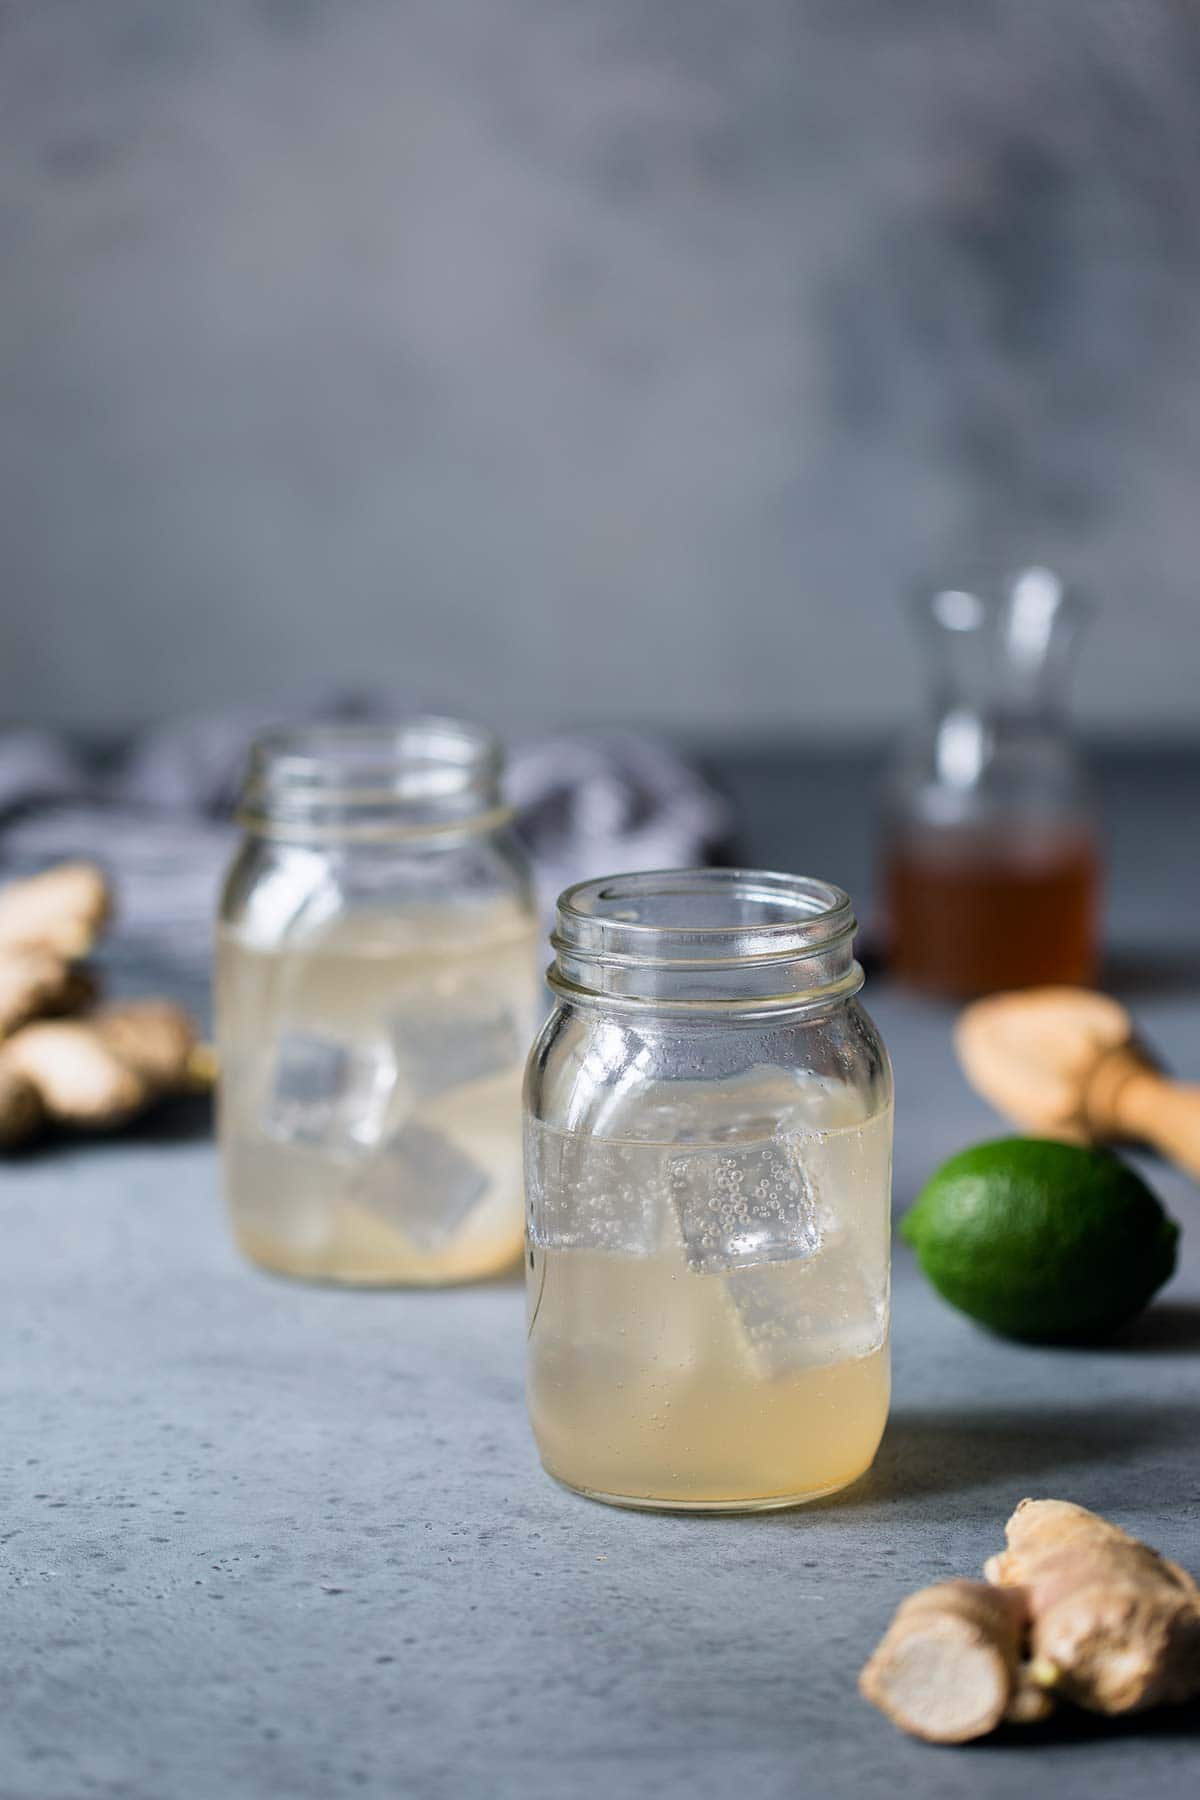 Two mason jars filled with homemade ginger ale, surrounded by homemade ginger syrup, limes and fresh ginger